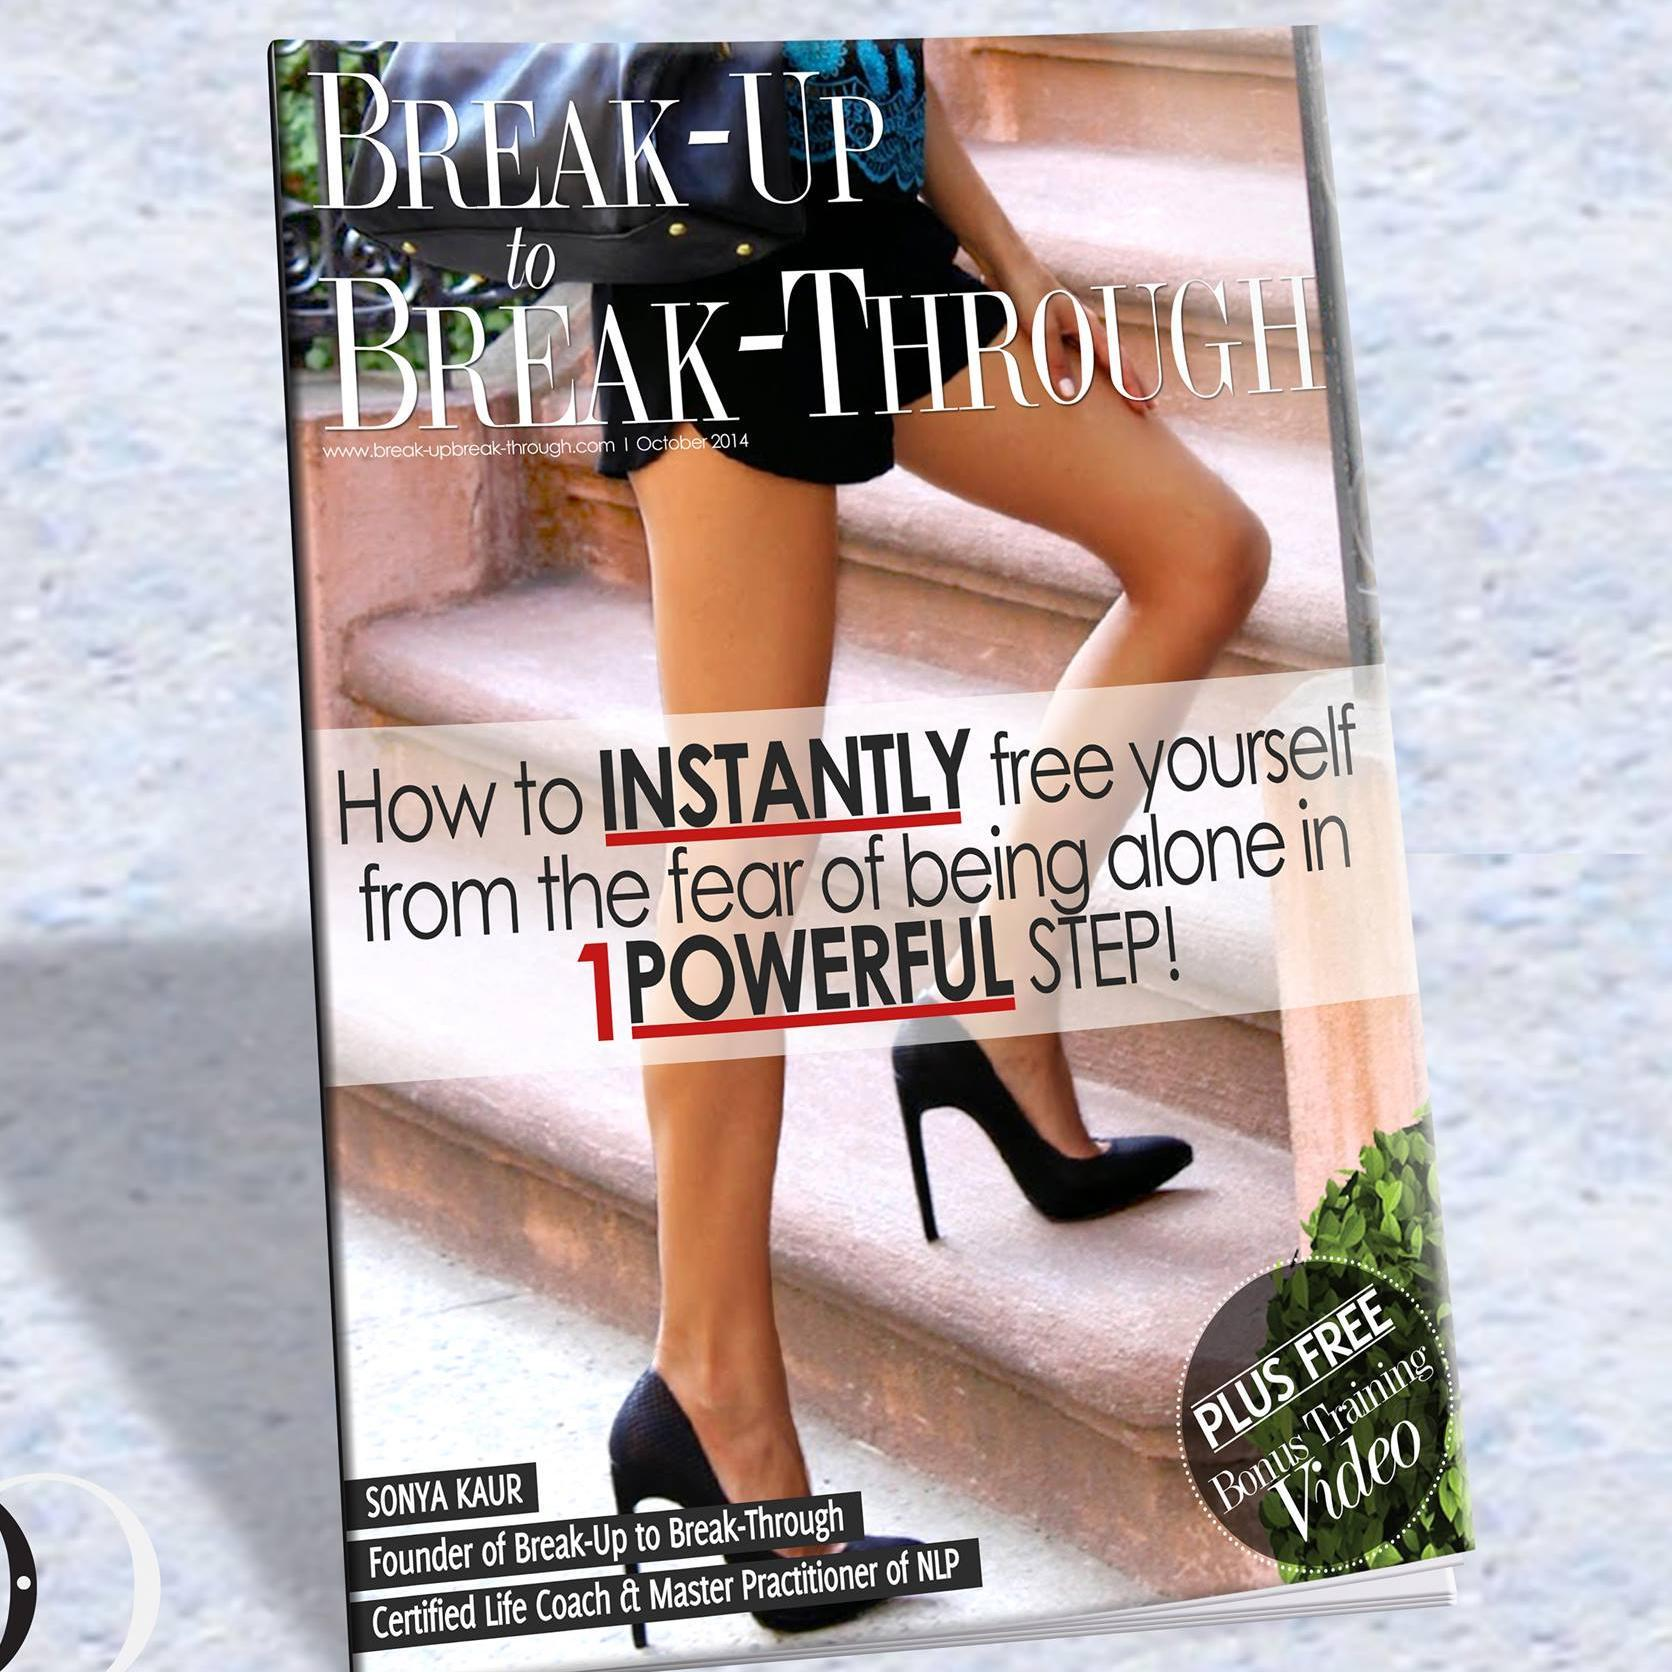 Breakup breakthrough